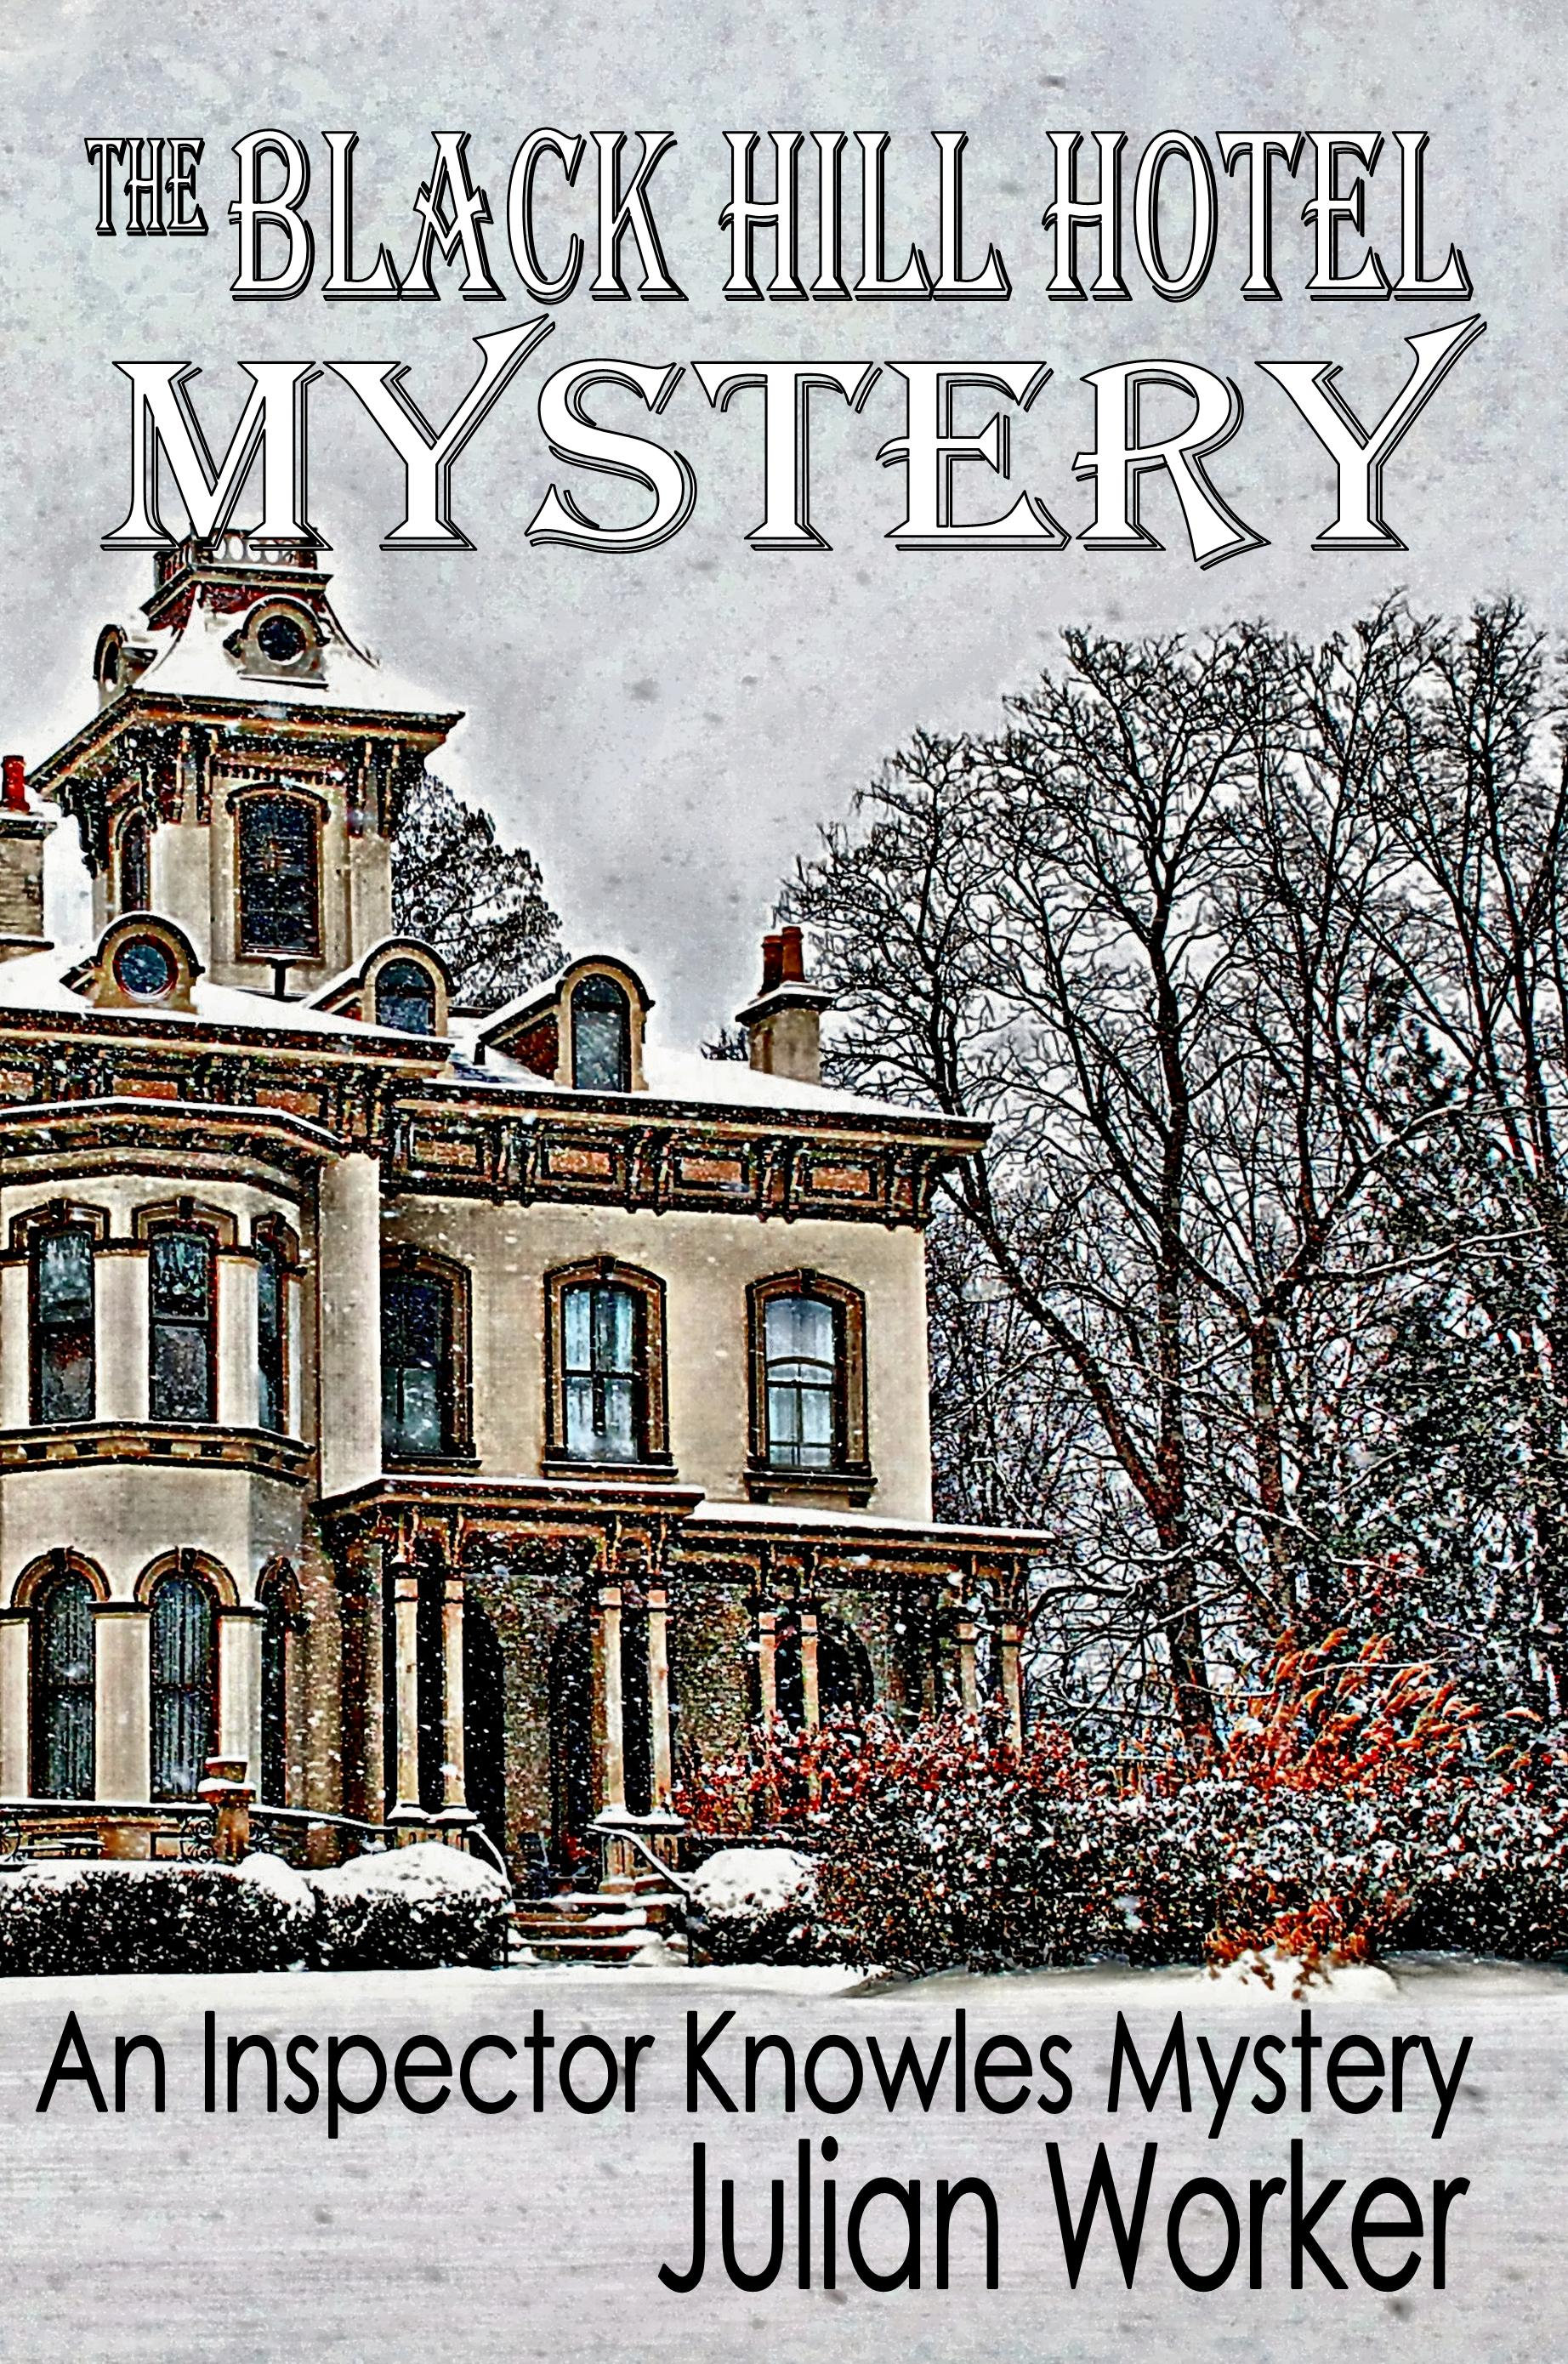 The Black Hill Hotel Mystery – 33